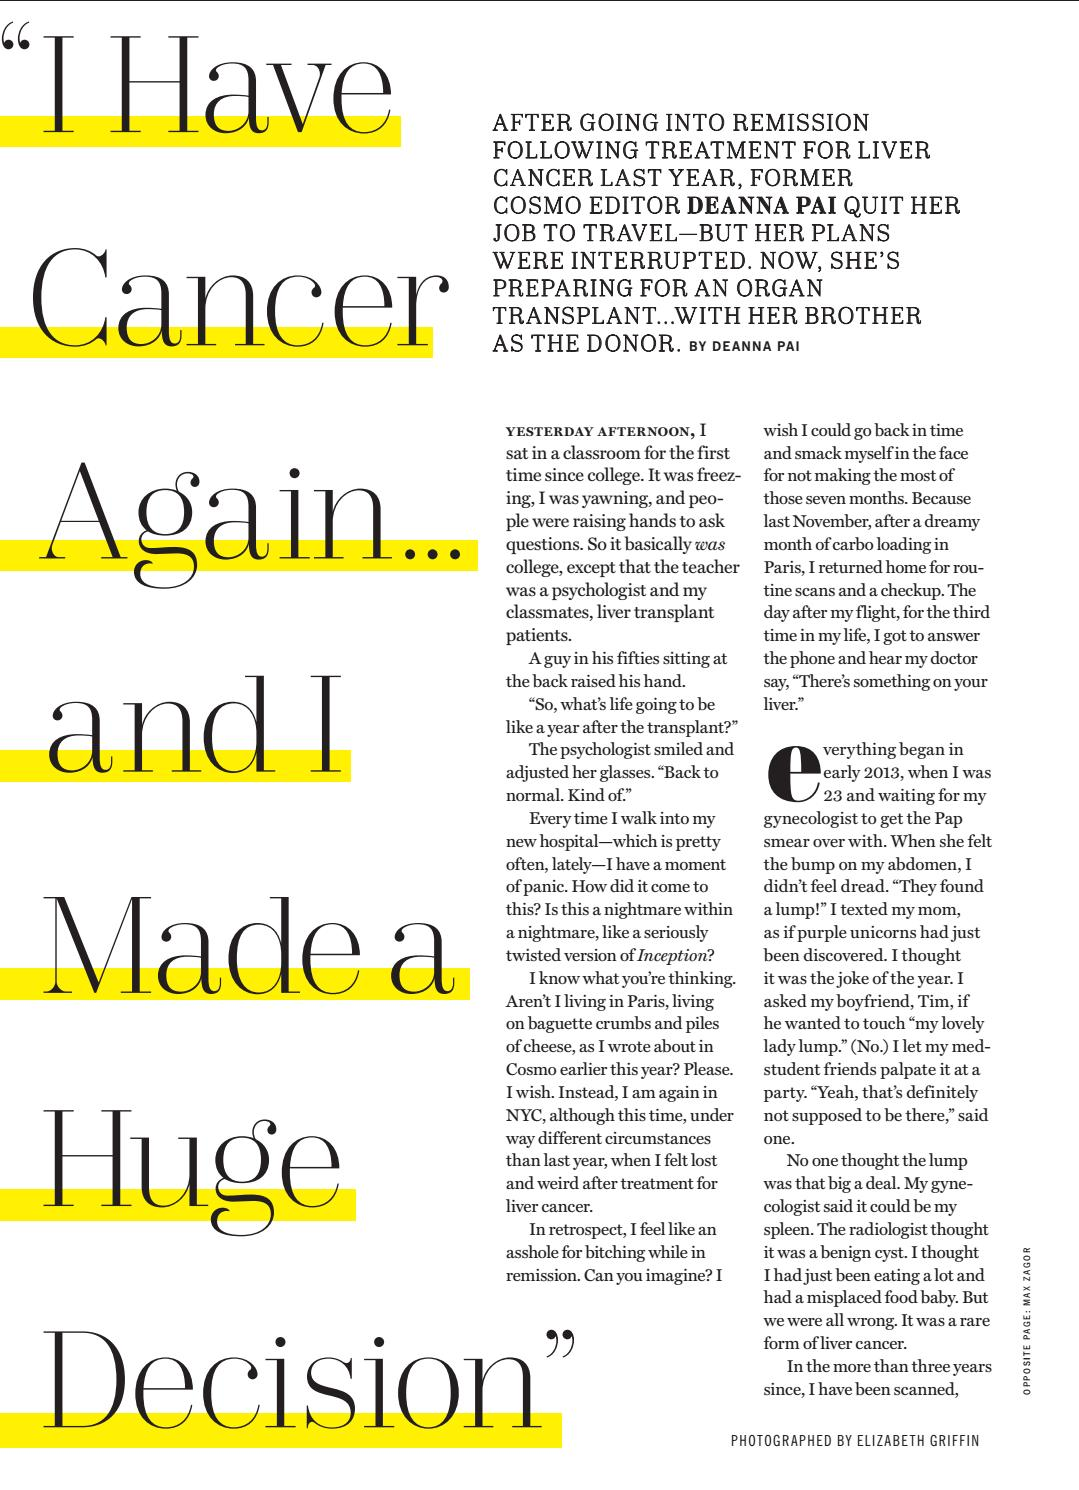 Cosmo Cancer Essay 4 0816 By Dcp522 Issuu